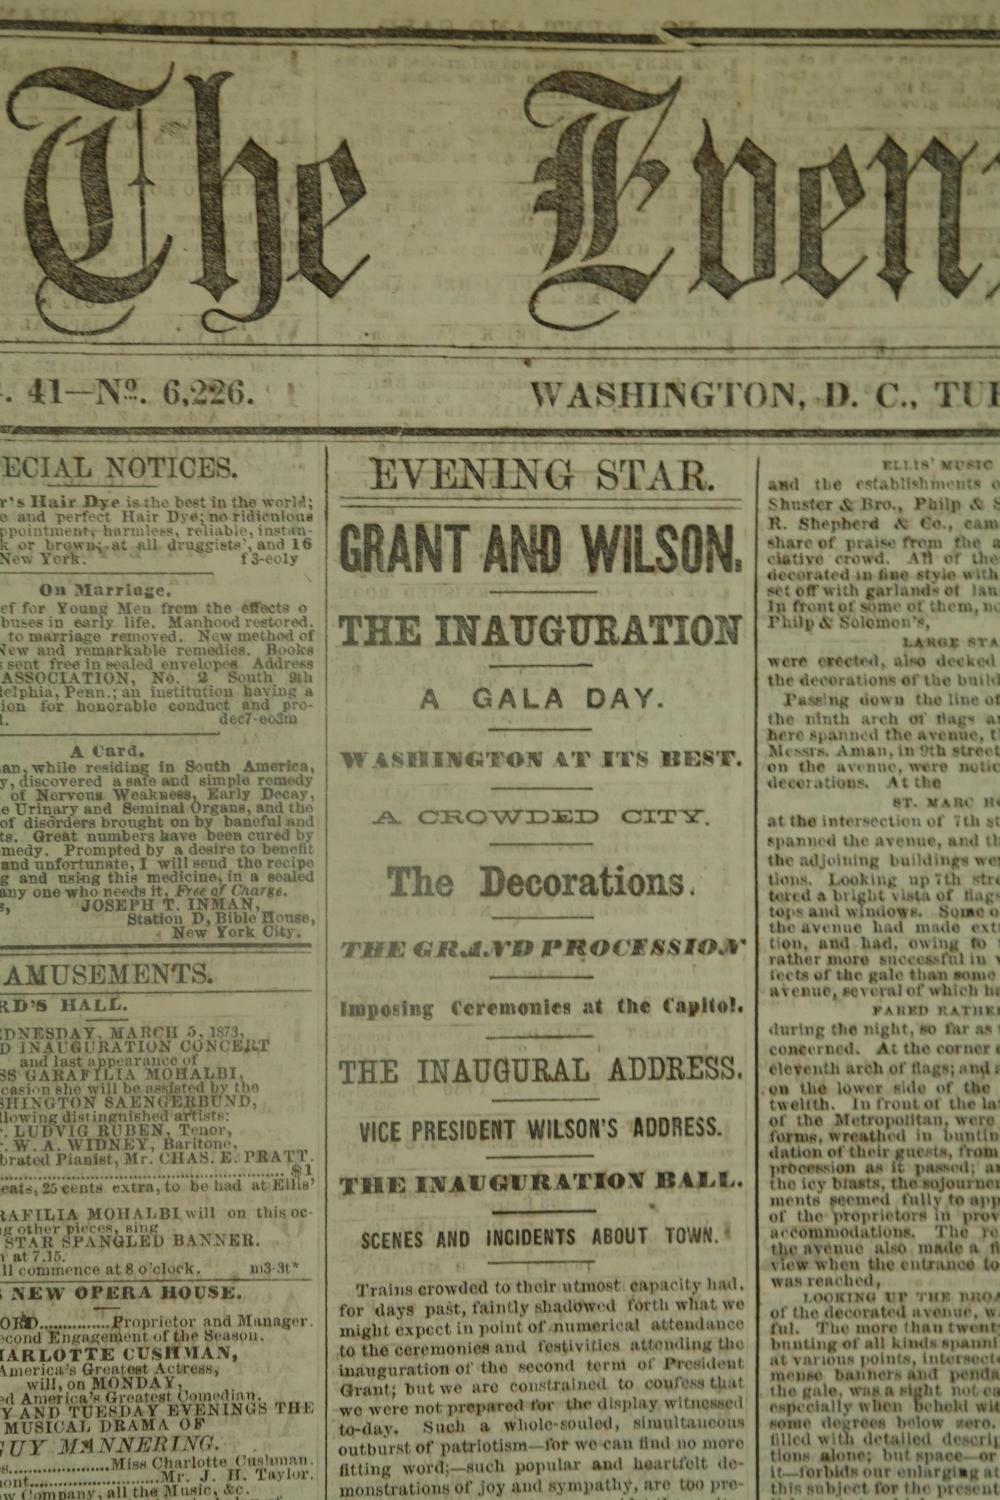 Lot 325: The Evening Star. 153 issues. 1873.